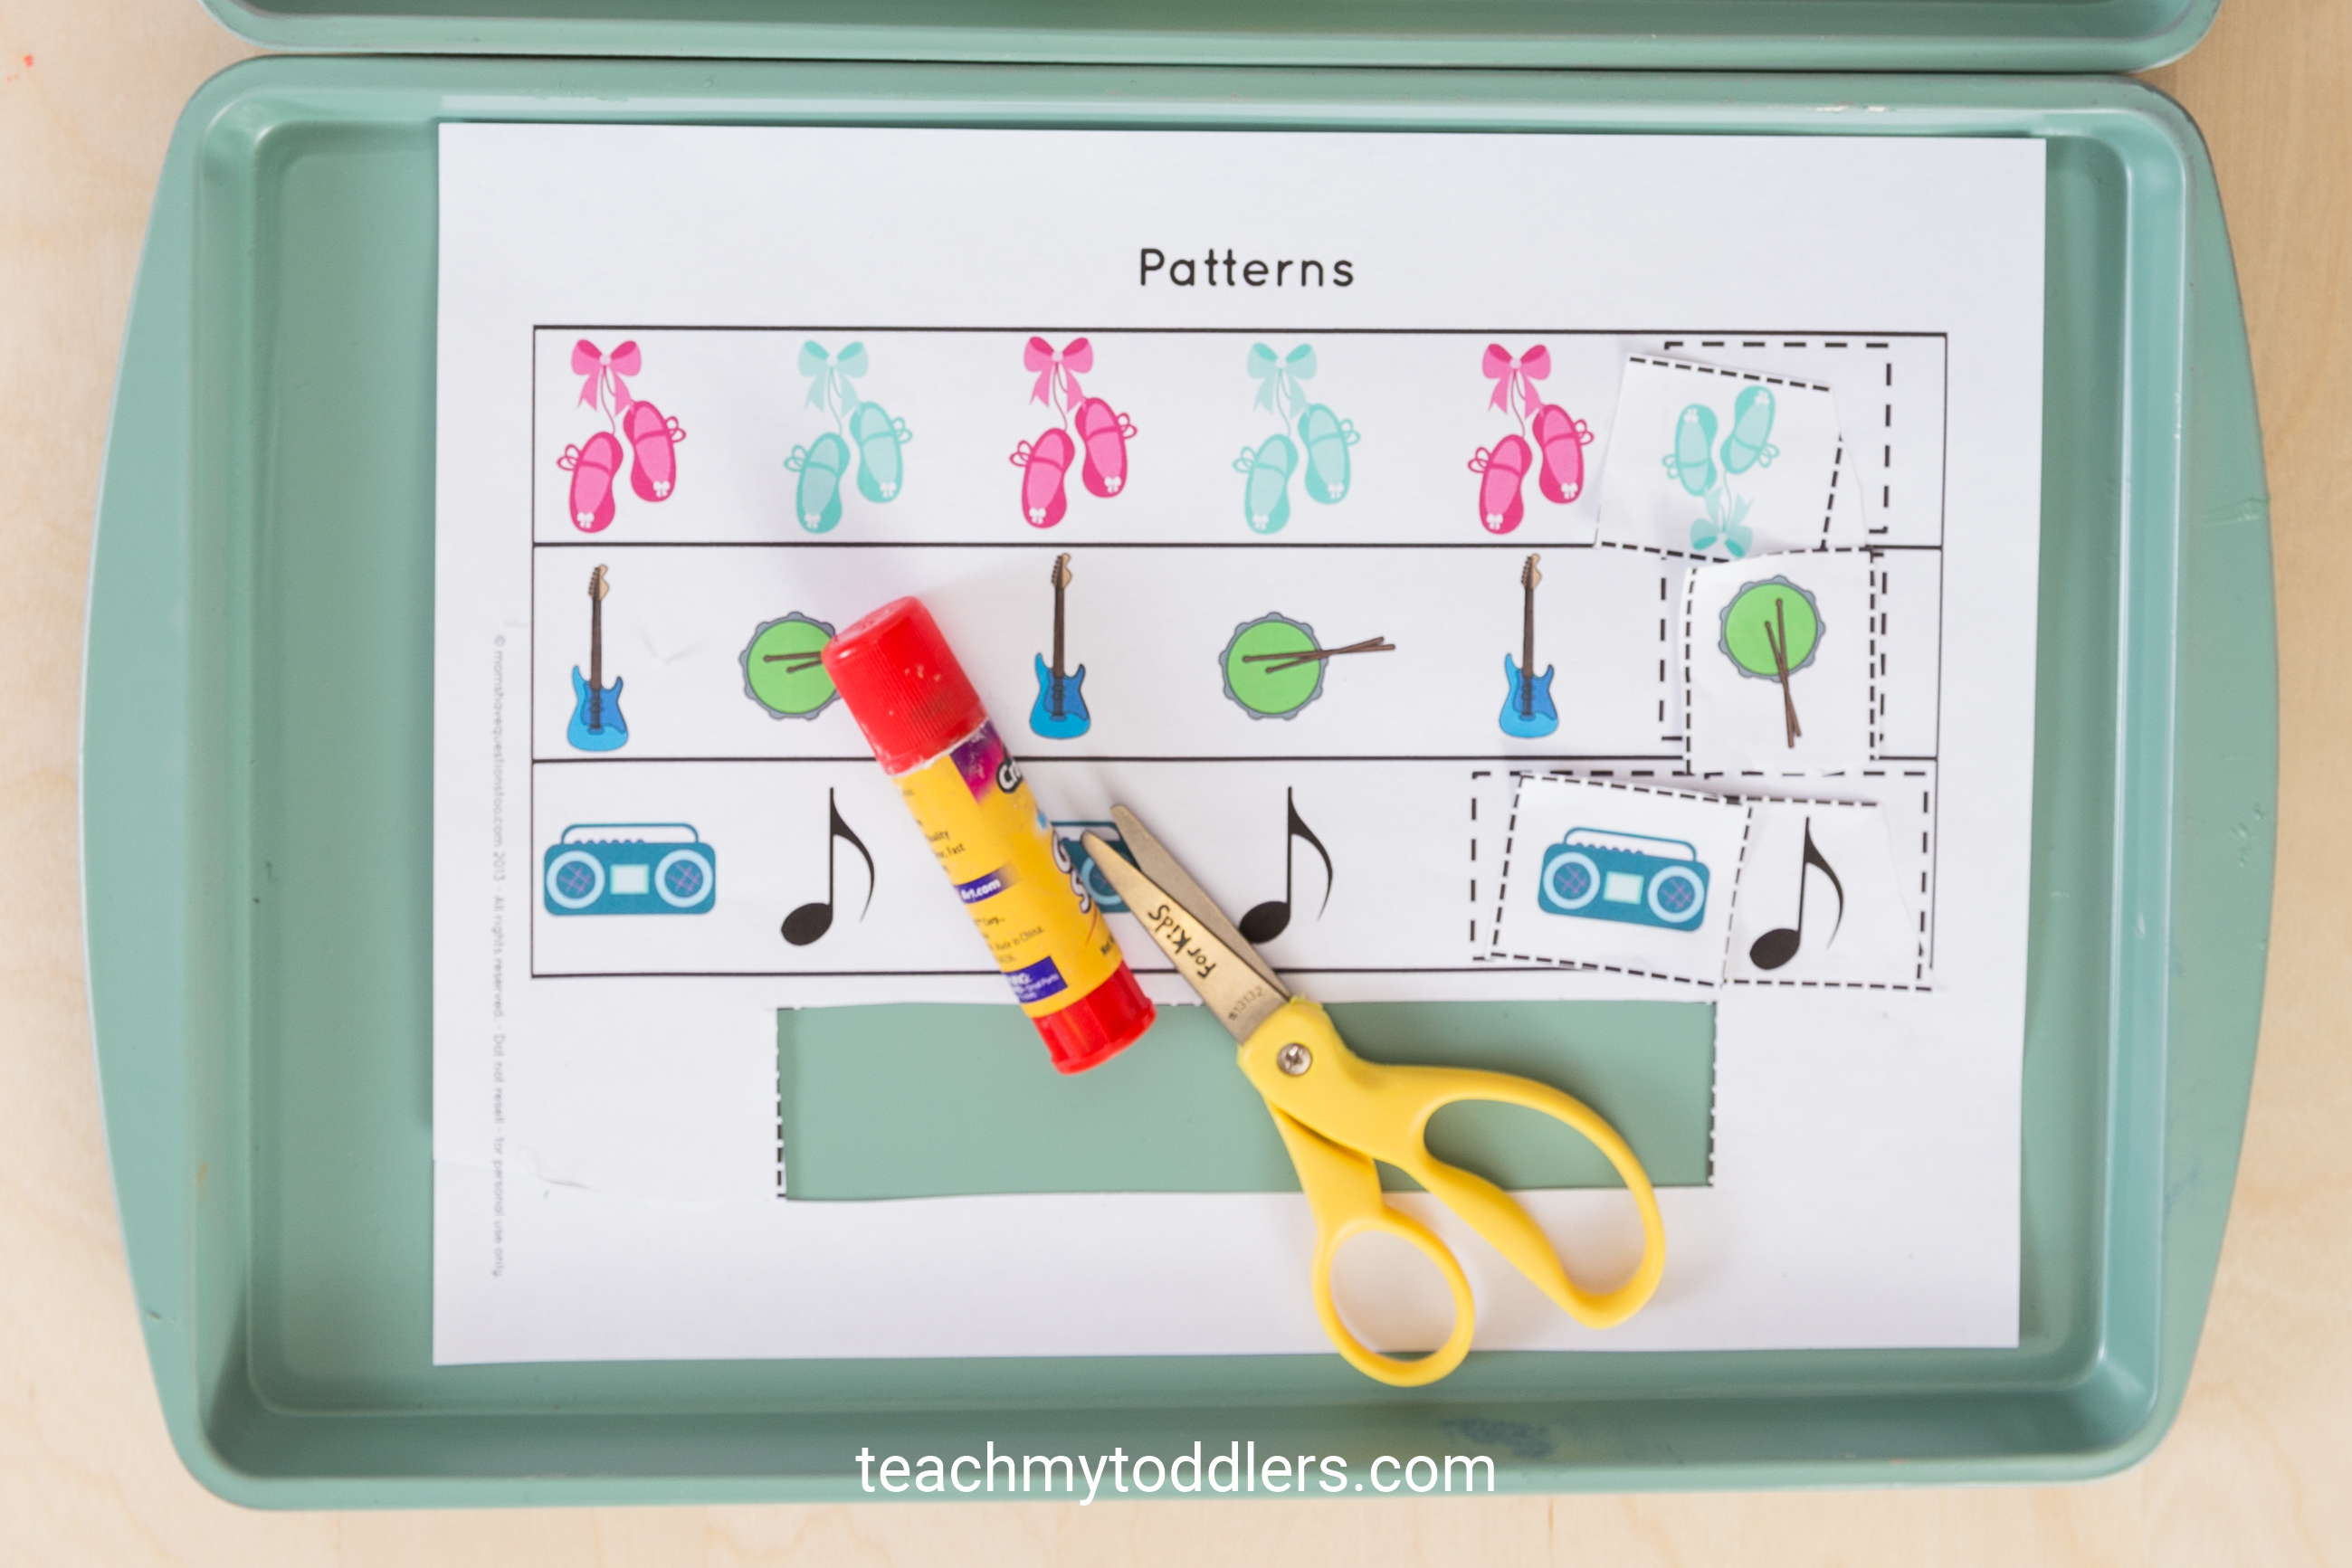 Learn how to use this d is for dance activities to teach toddlers the letter d